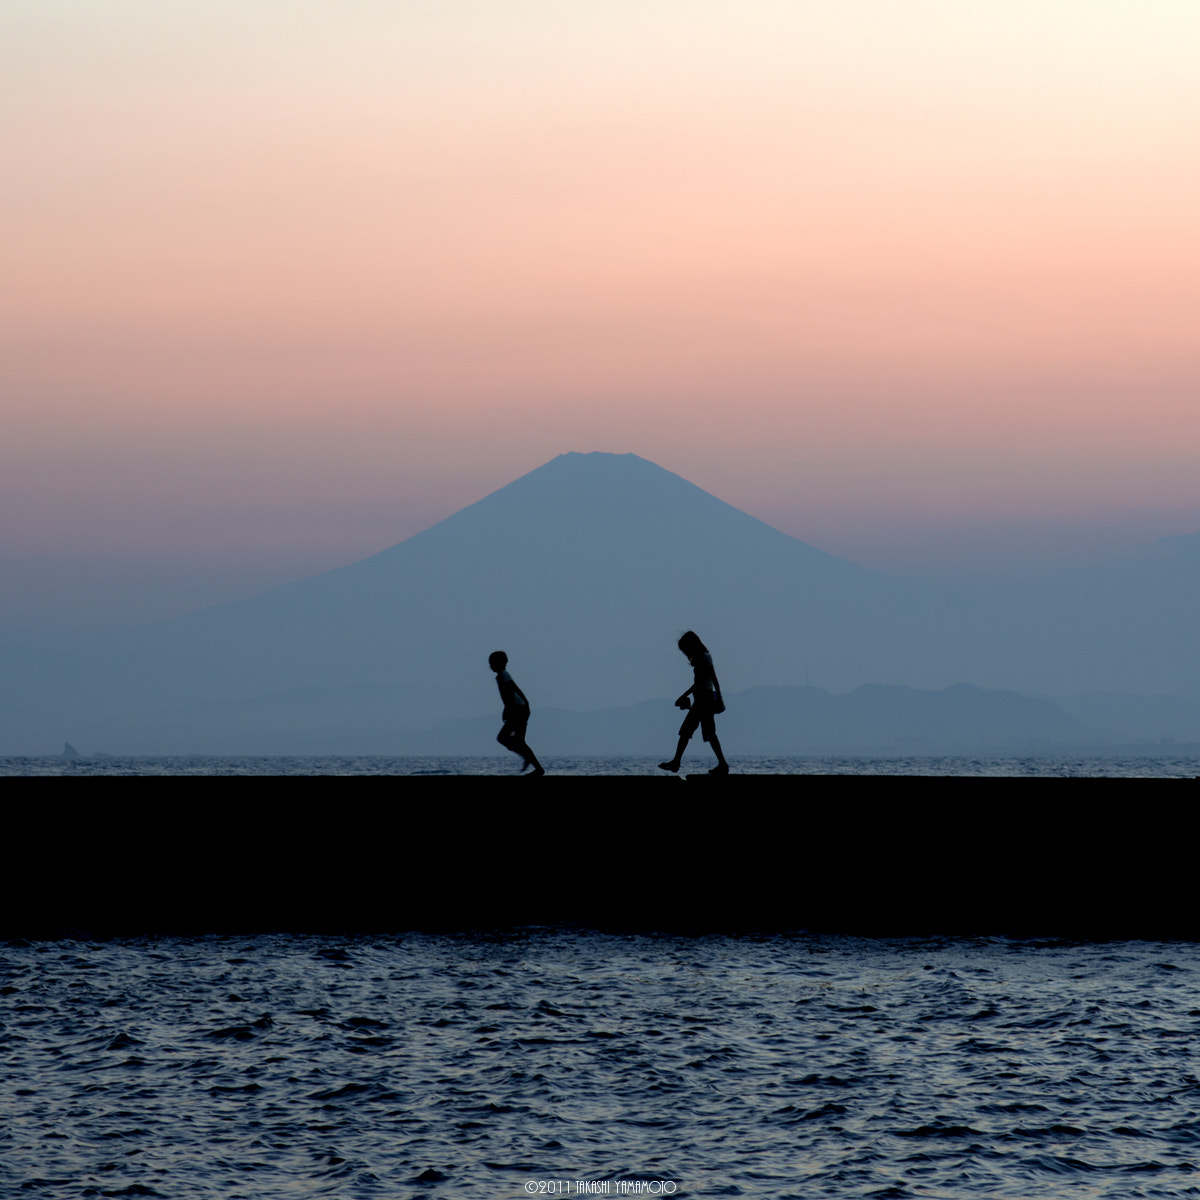 Photograph let's go home by Takashi Yamamoto on 500px